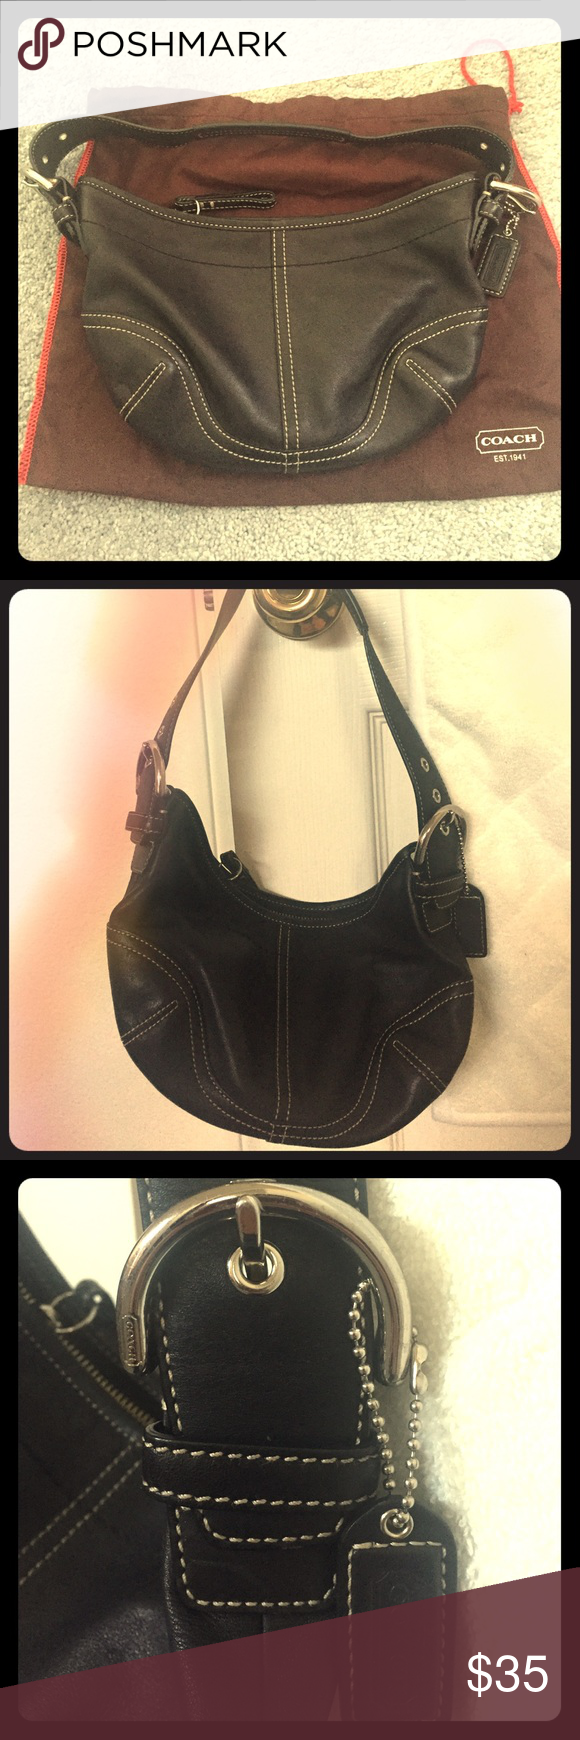 Coach small hobo purse Very cute and in great condition slightly used Coach small hobo Coach Bags Hobos